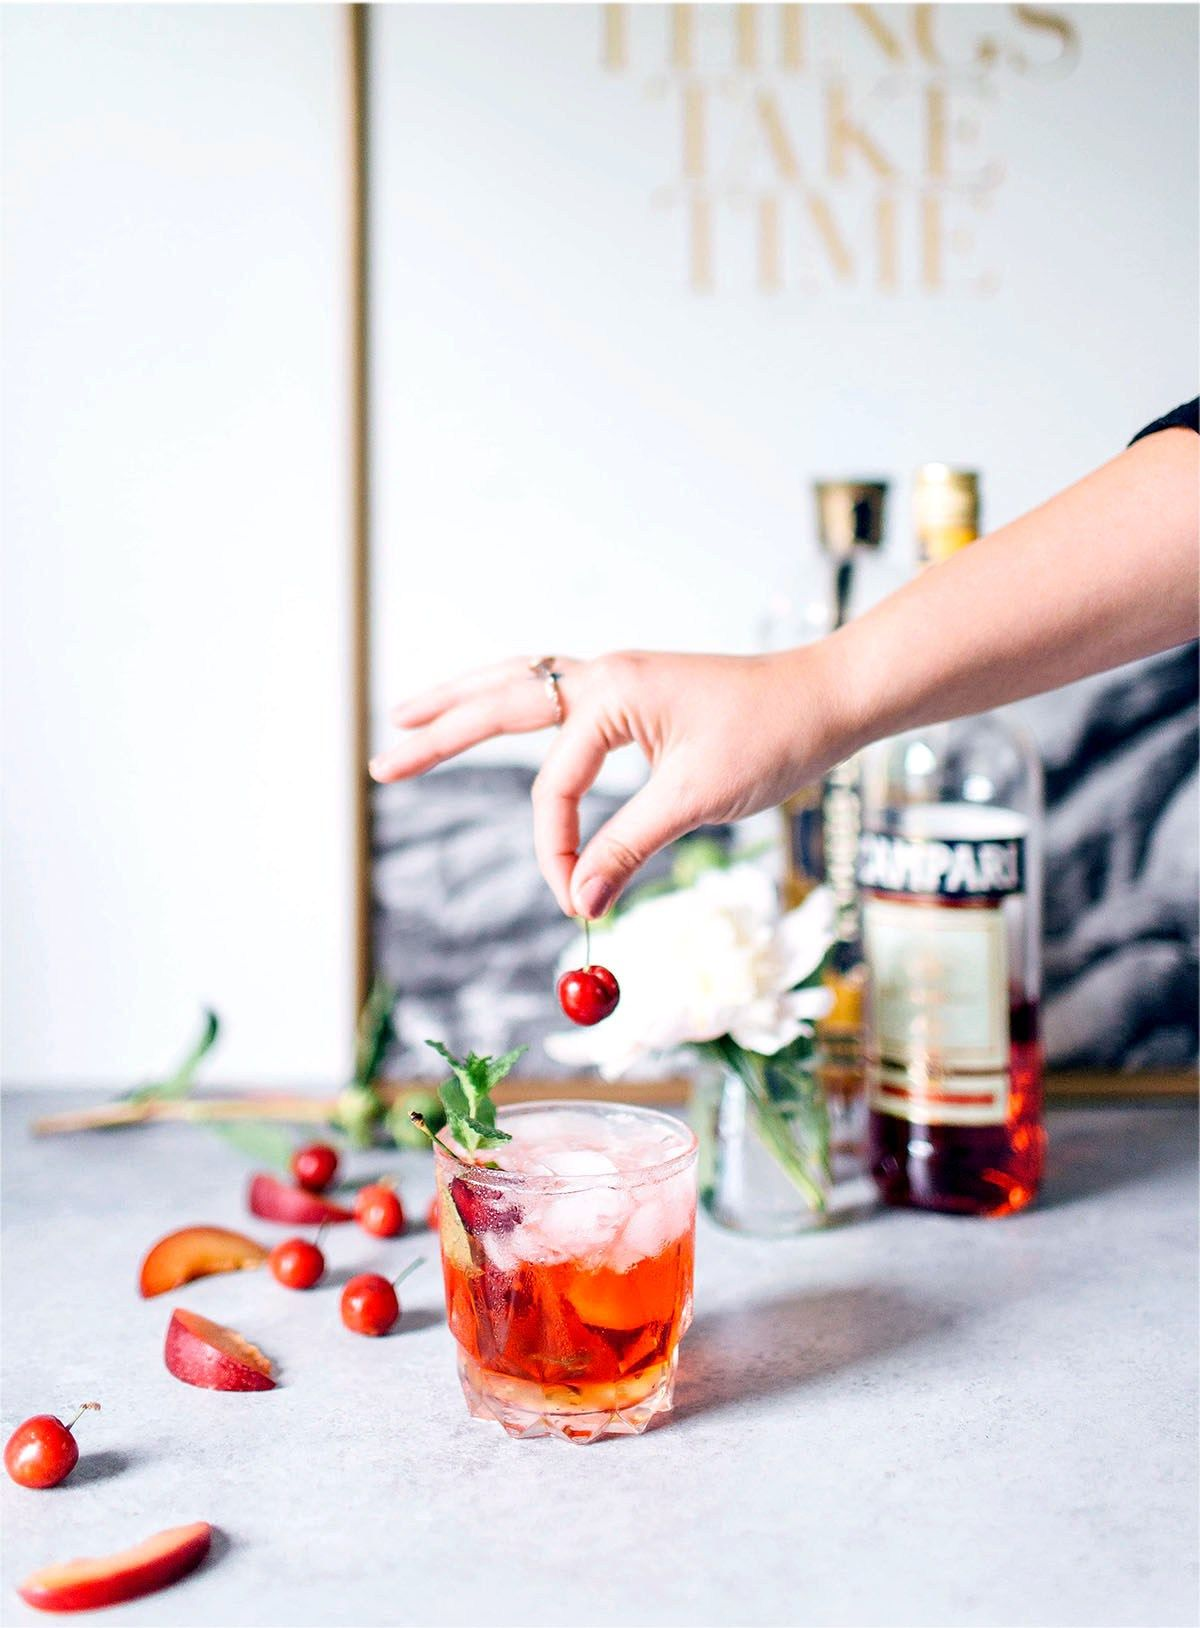 St. Germain Spritzer 1 oz St. Germain Liquor 1 oz Campari 7 oz sparkling white wine (or club soda) Cherries, apricot slices, or mint, for garnish